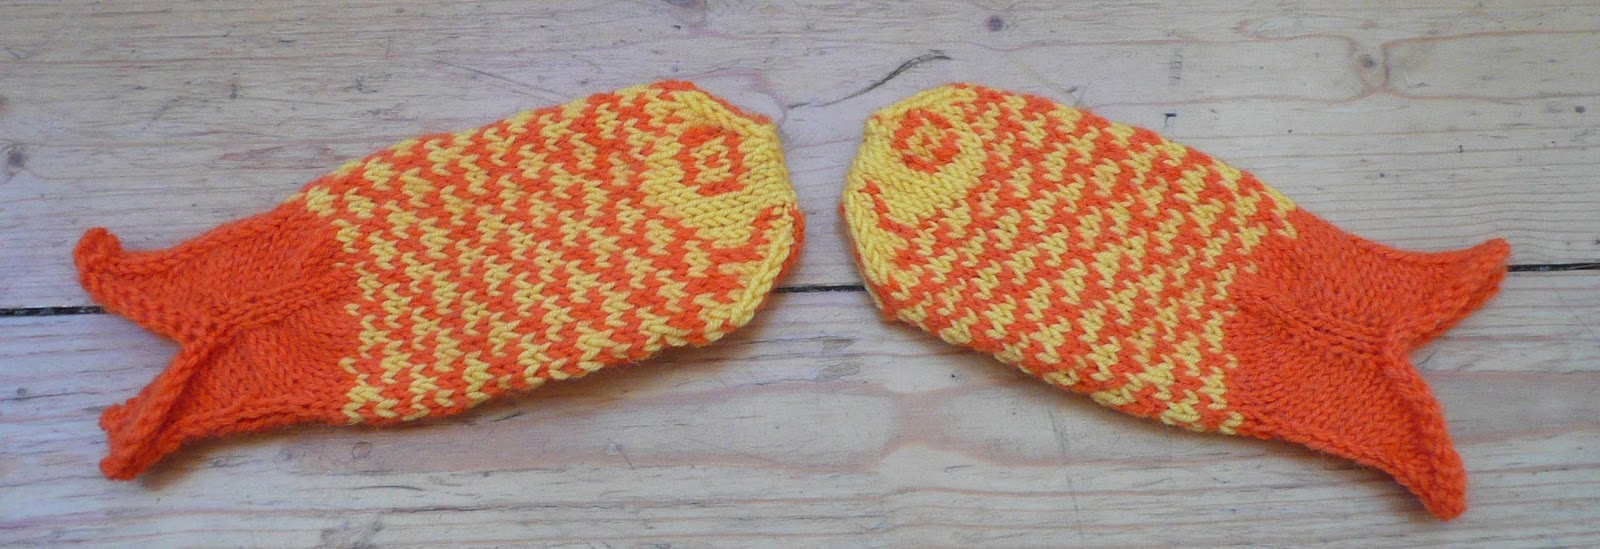 Knitting Pattern For Fish Mittens : WOOLLIE WANDERINGS: Goldfish Mittens